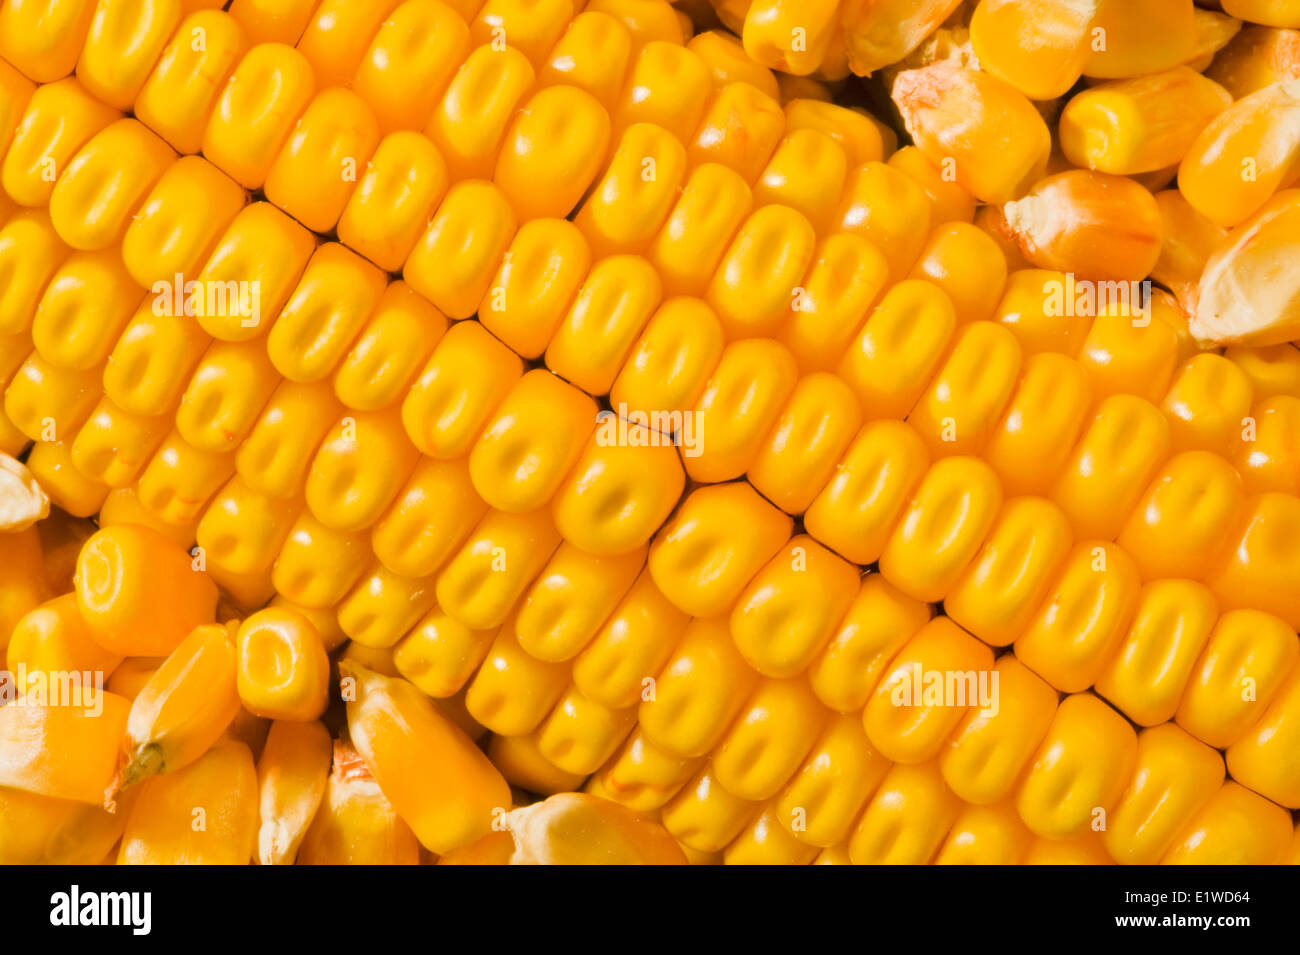 close-up of mature grain/feed corn and harvested kernels - Stock Image